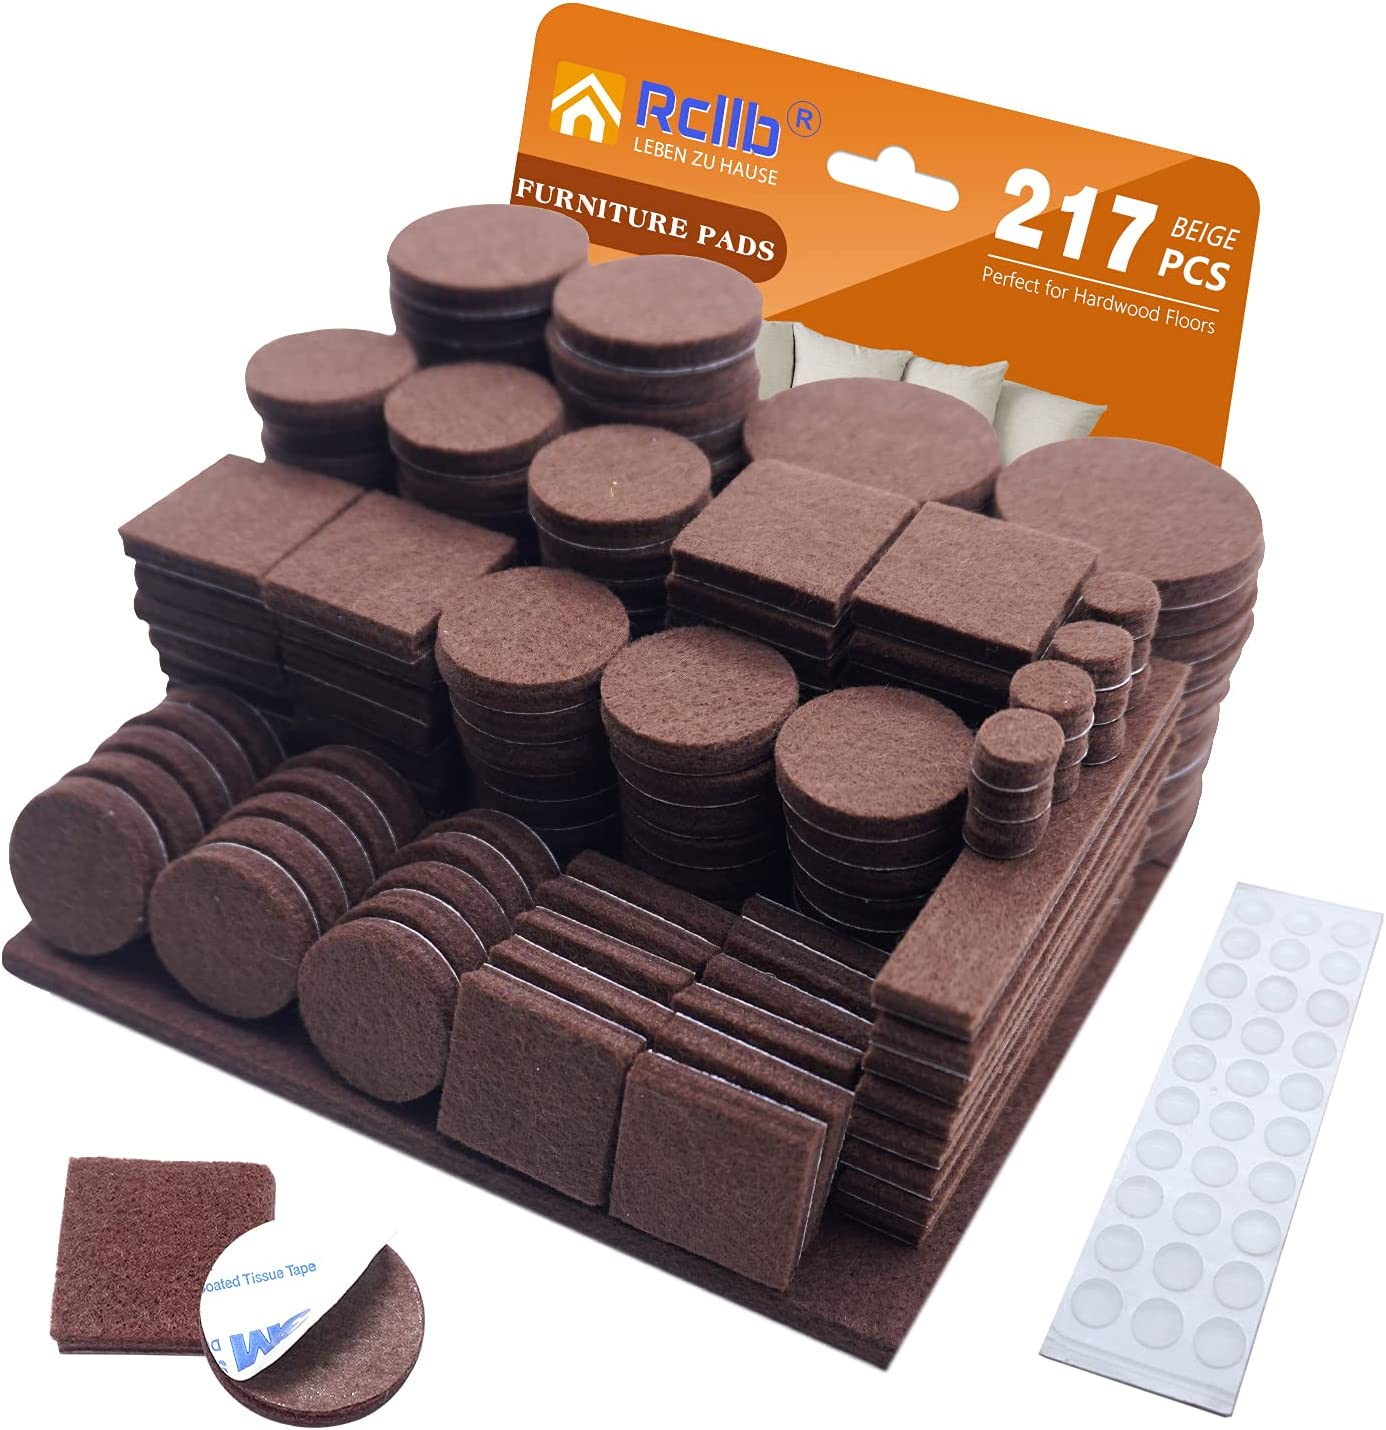 Felt Furniture Pads,217 Pieces All Sizes Felt Pads 5mm Thick Anti Scratch Wood Floor Protectors Self Adhesive with 30 Cabinet Door Bumpers for Furniture Table Chair Legs Feet Hardwood Floor(Brown)